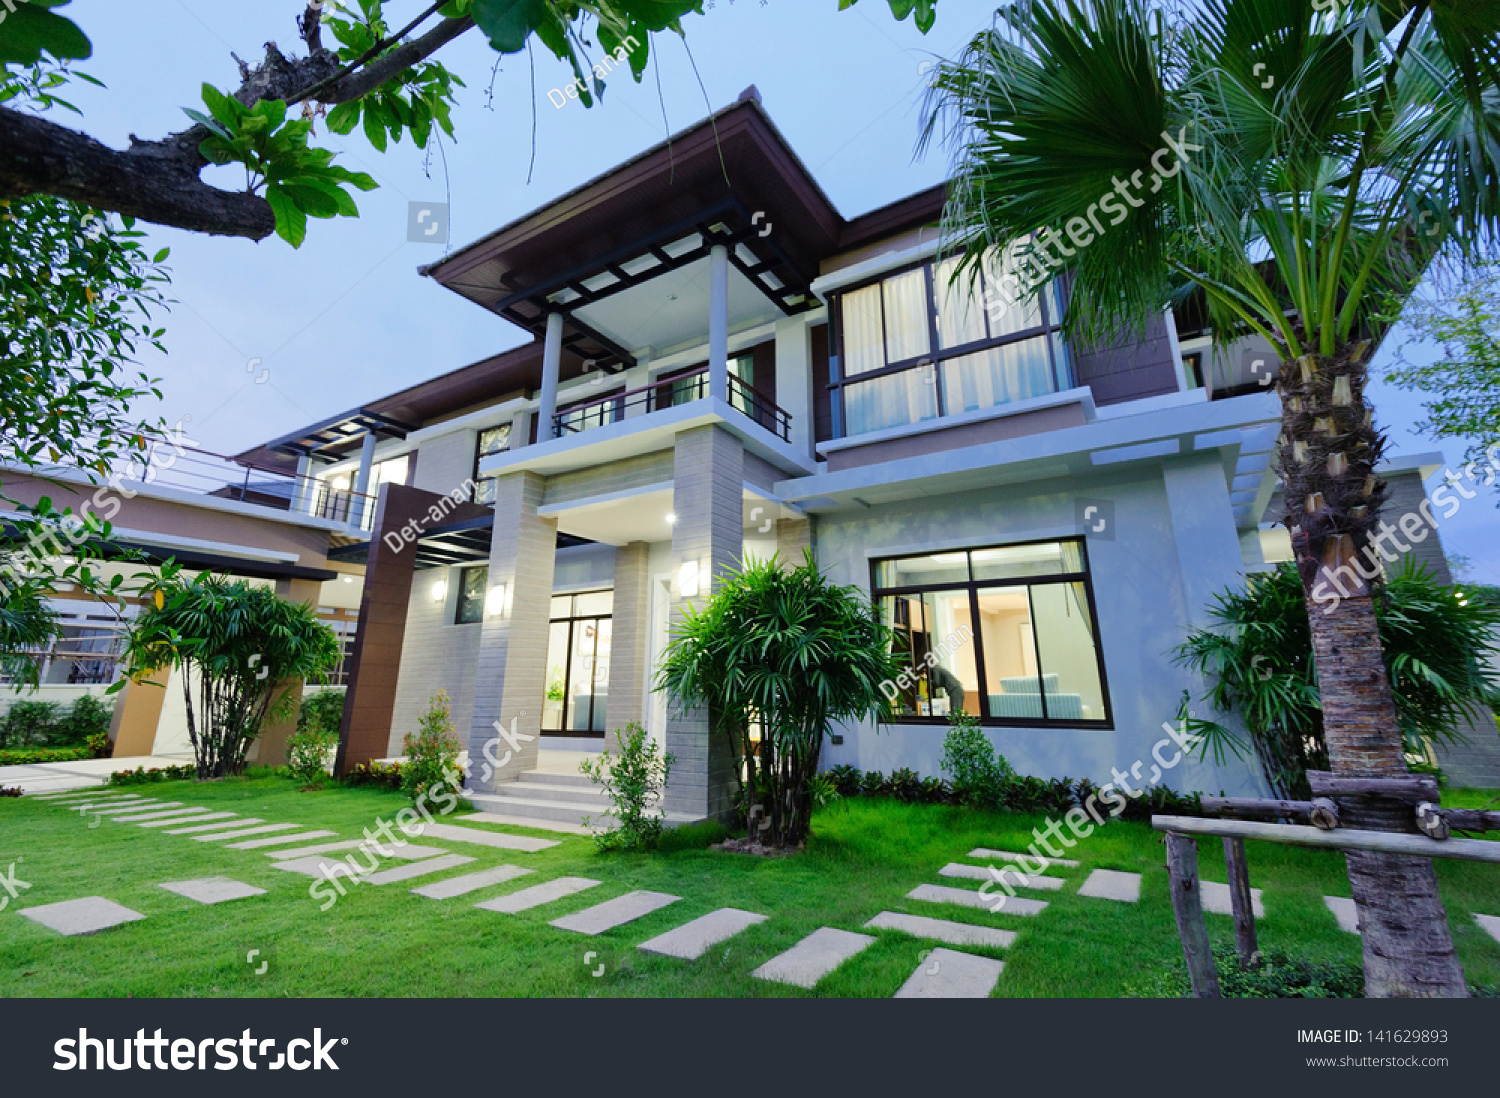 Modern house night stock photo 141629893 shutterstock for Modern house at night